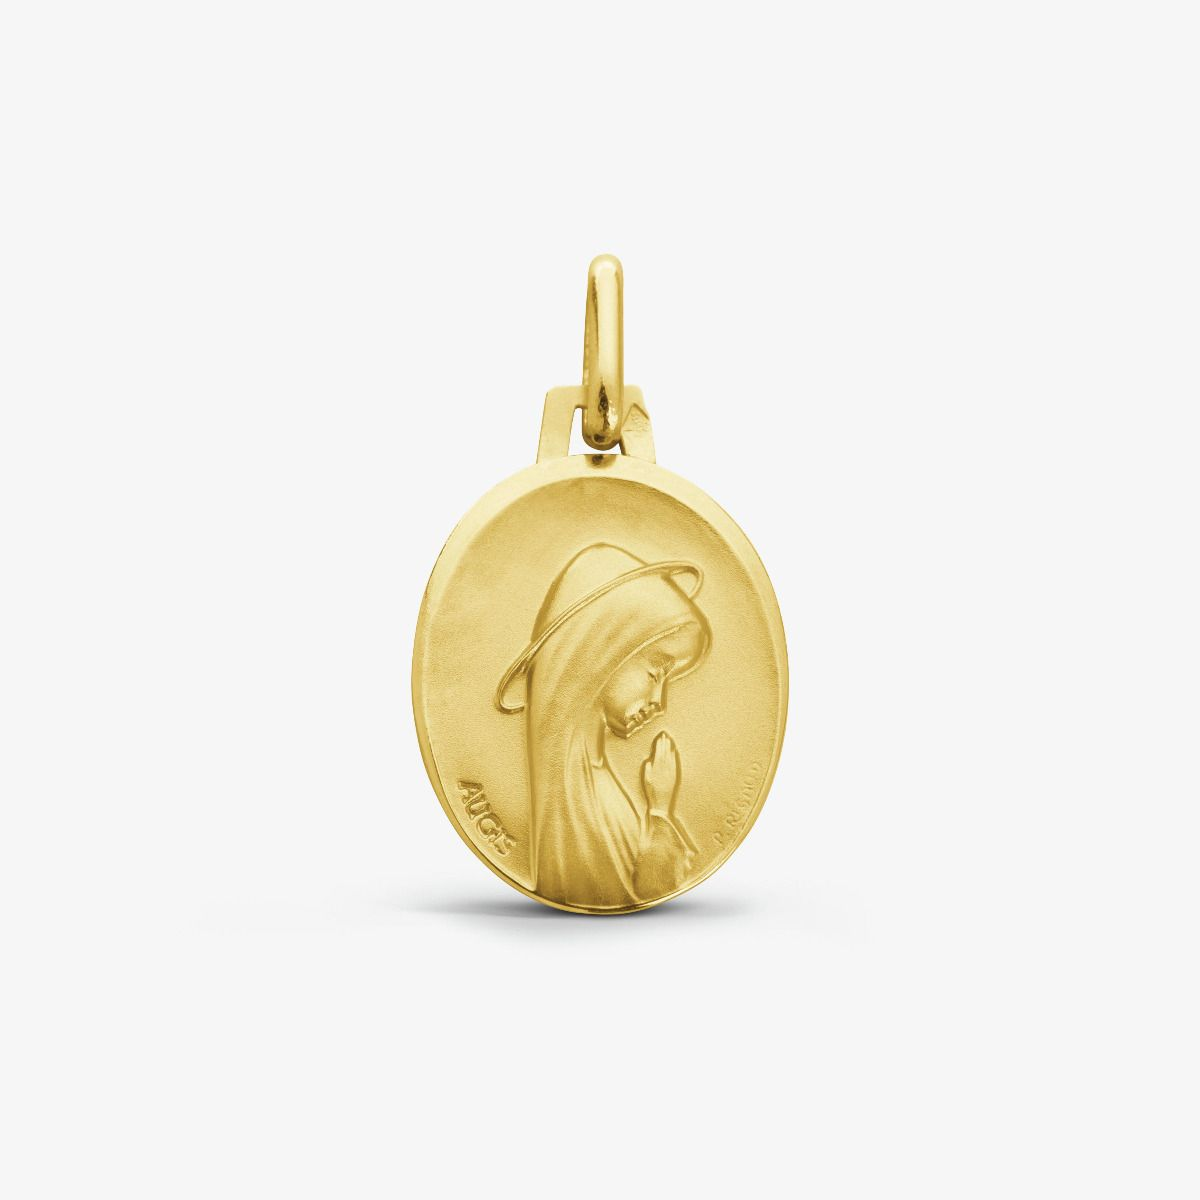 Médaille Vierge Priante Or Jaune 9 carats - 16 mm